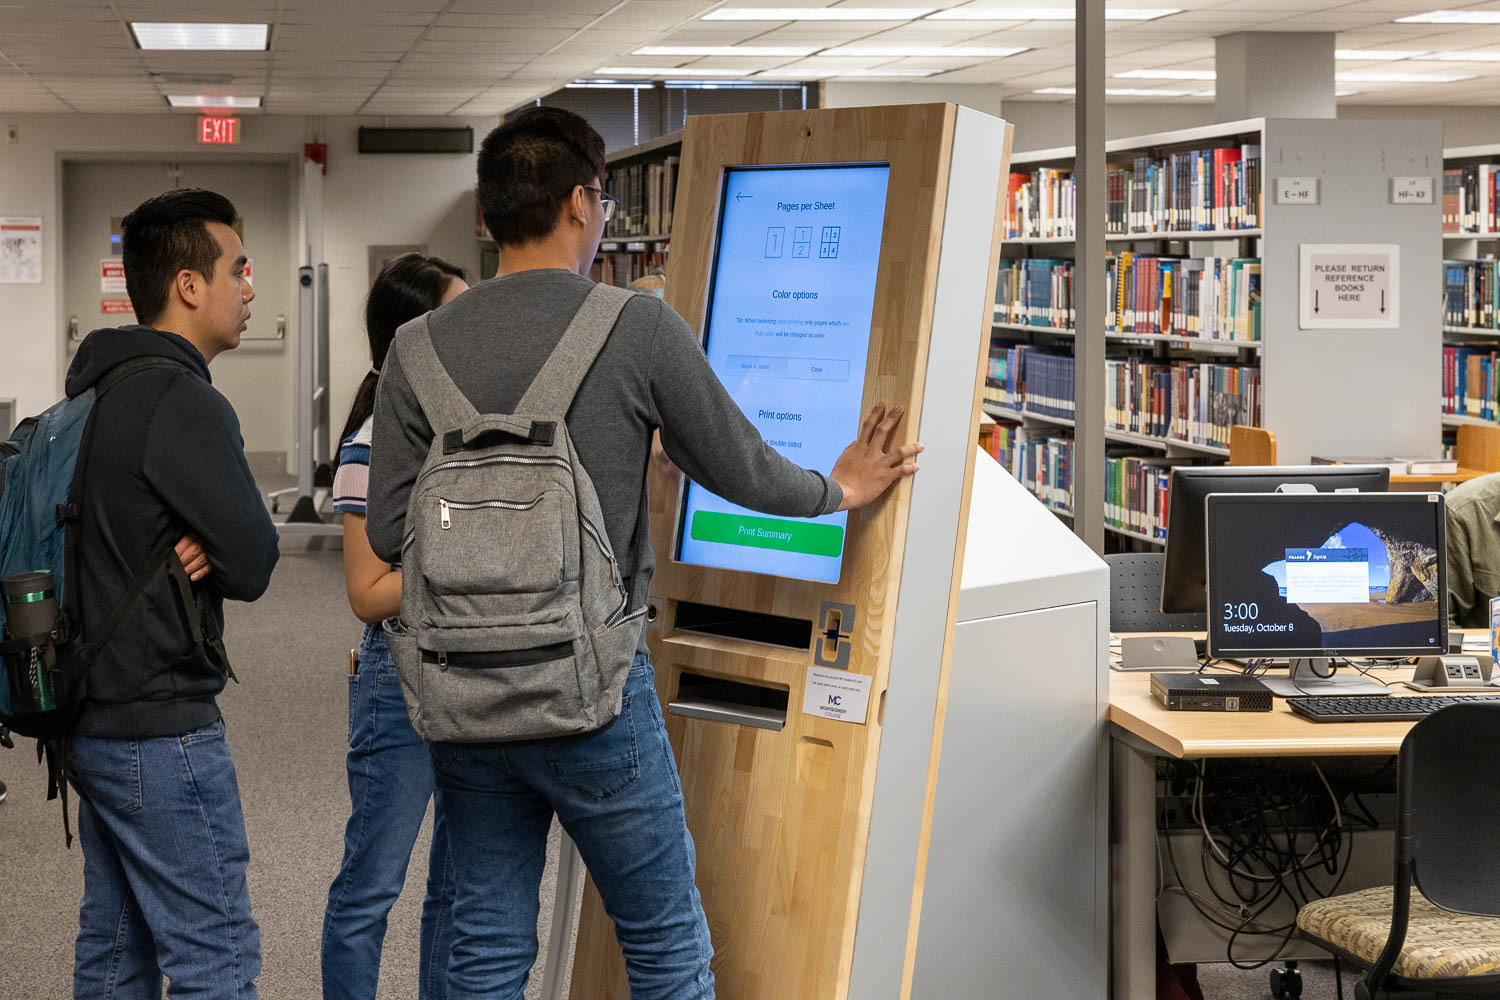 Students using the printer located in the library.